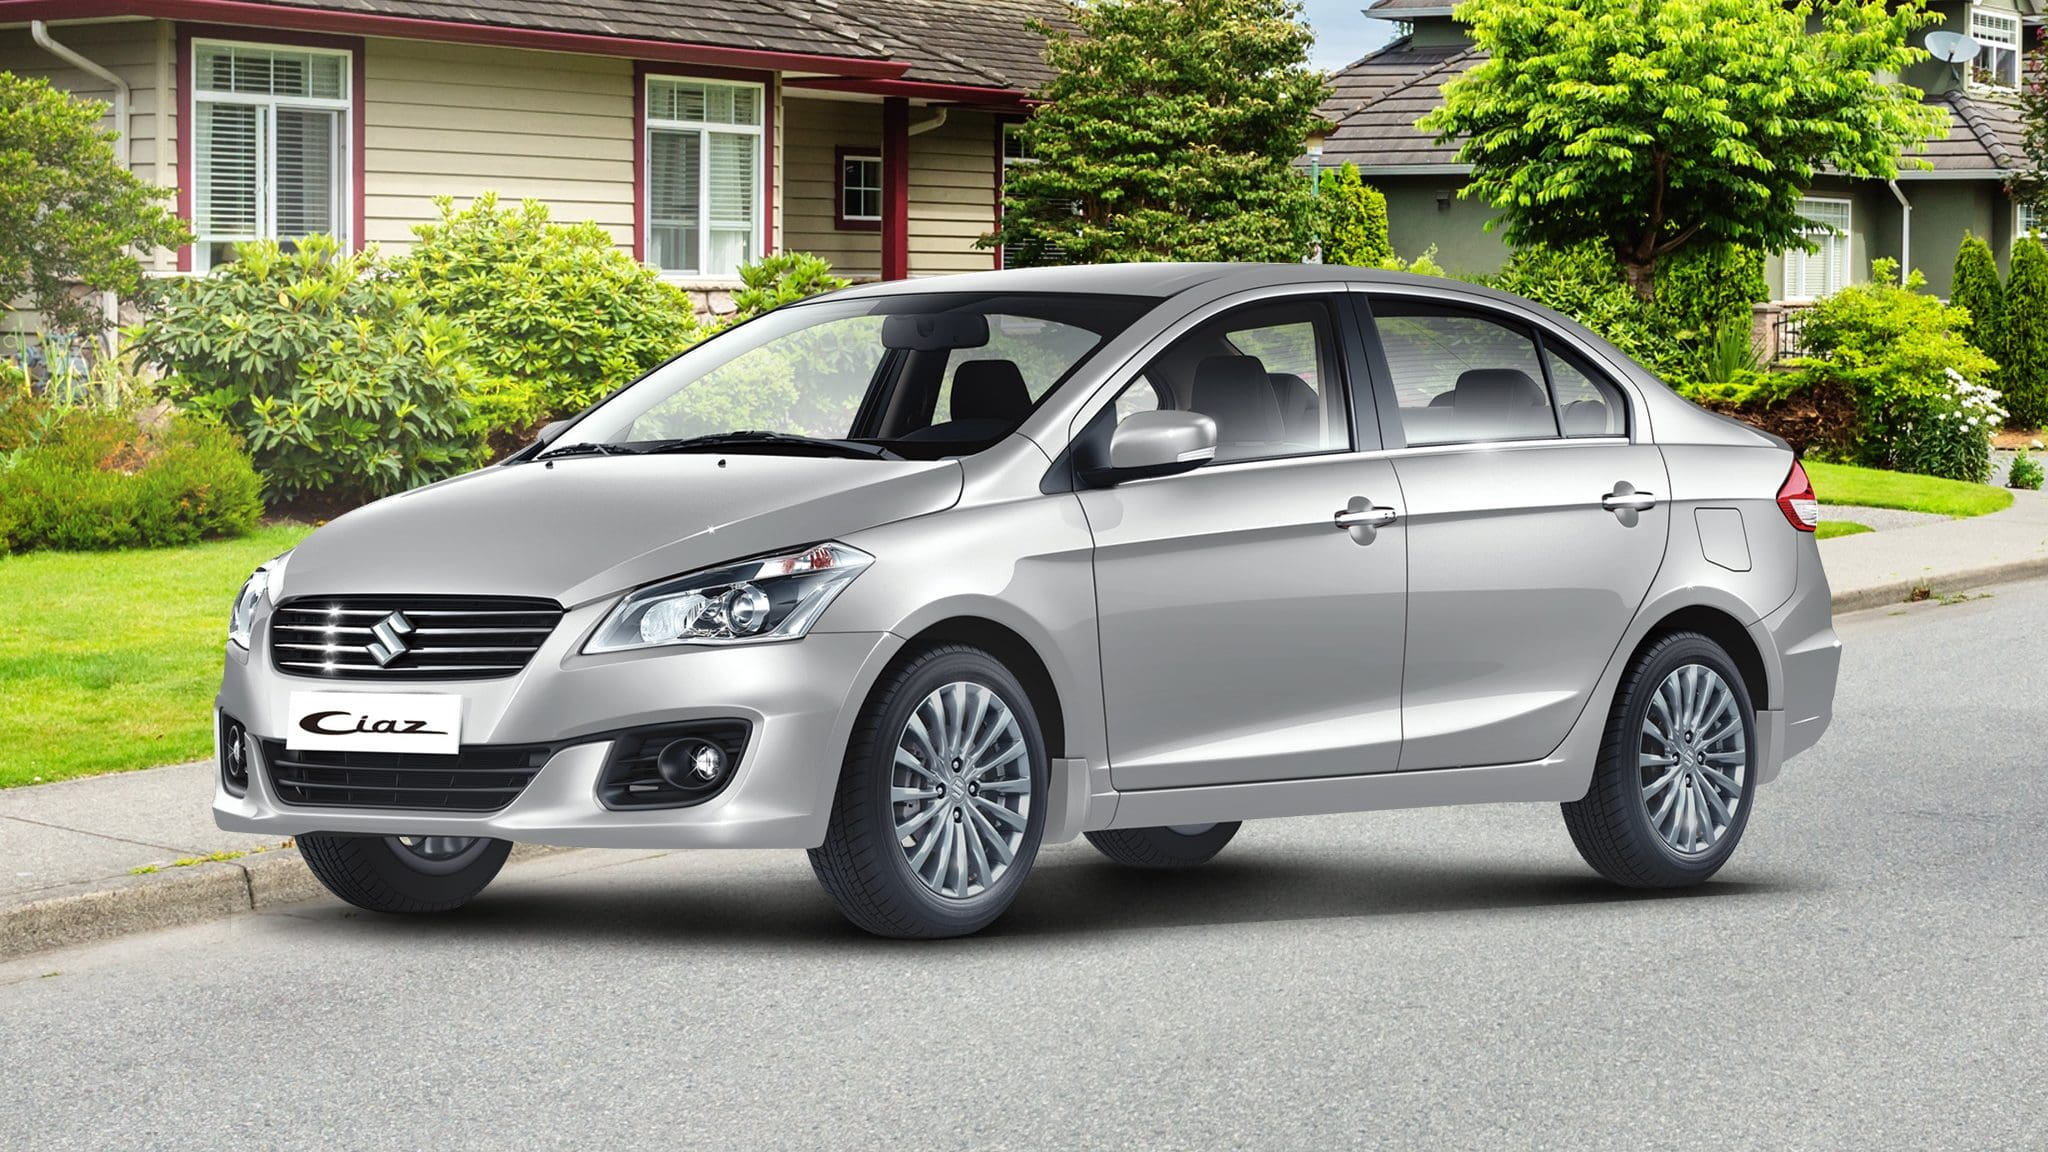 Suzuki Ciaz Ensures Fuel-Efficient, Safe, Comfortable Ride-Share